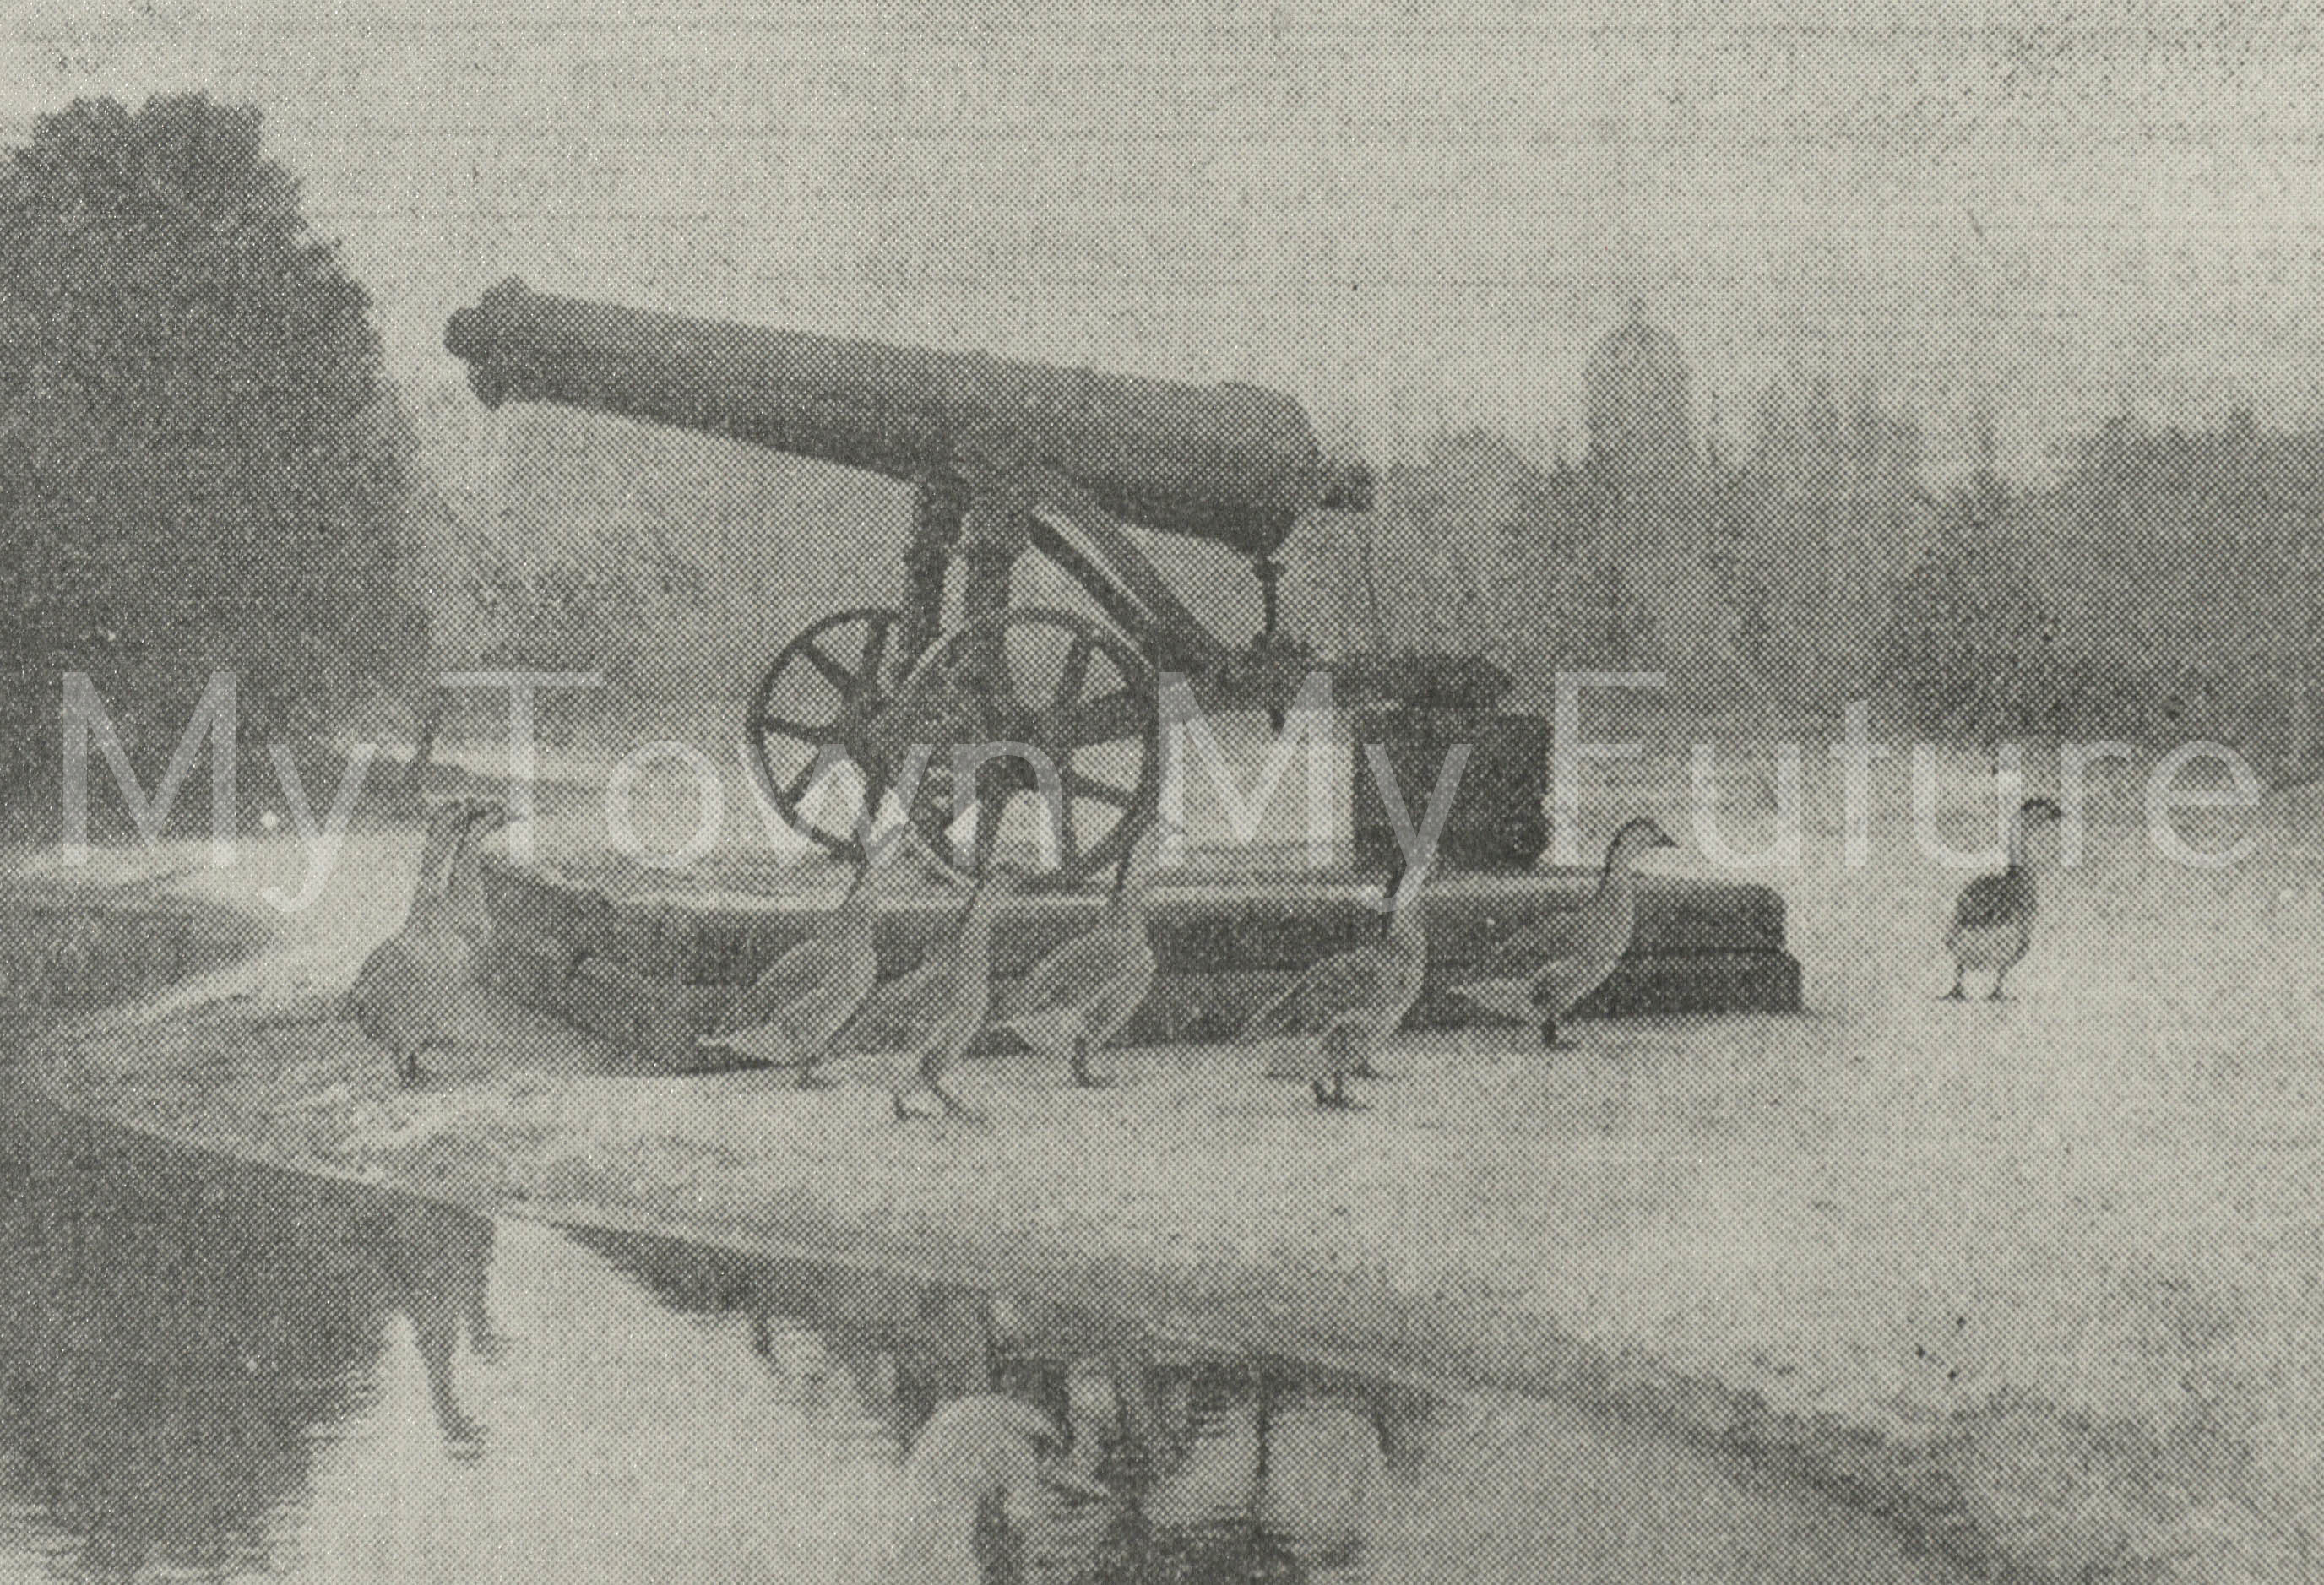 Albert Park - Cannon, 13th December 1926, Dept. of Planning - Cleveland County Council